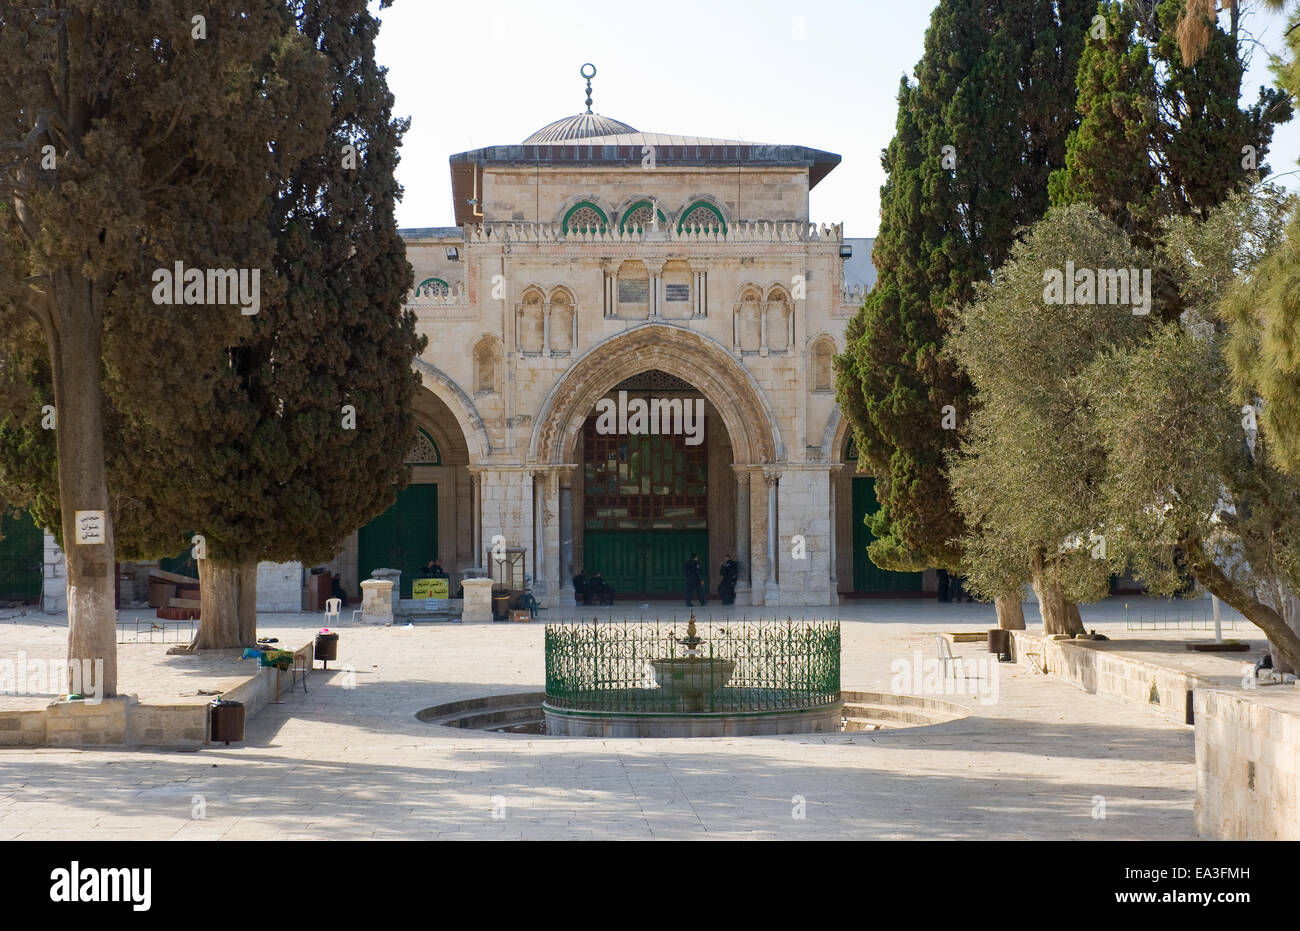 The entrance of the Al-aqsa mosque on the temple-square in Jerusalem - Stock Image